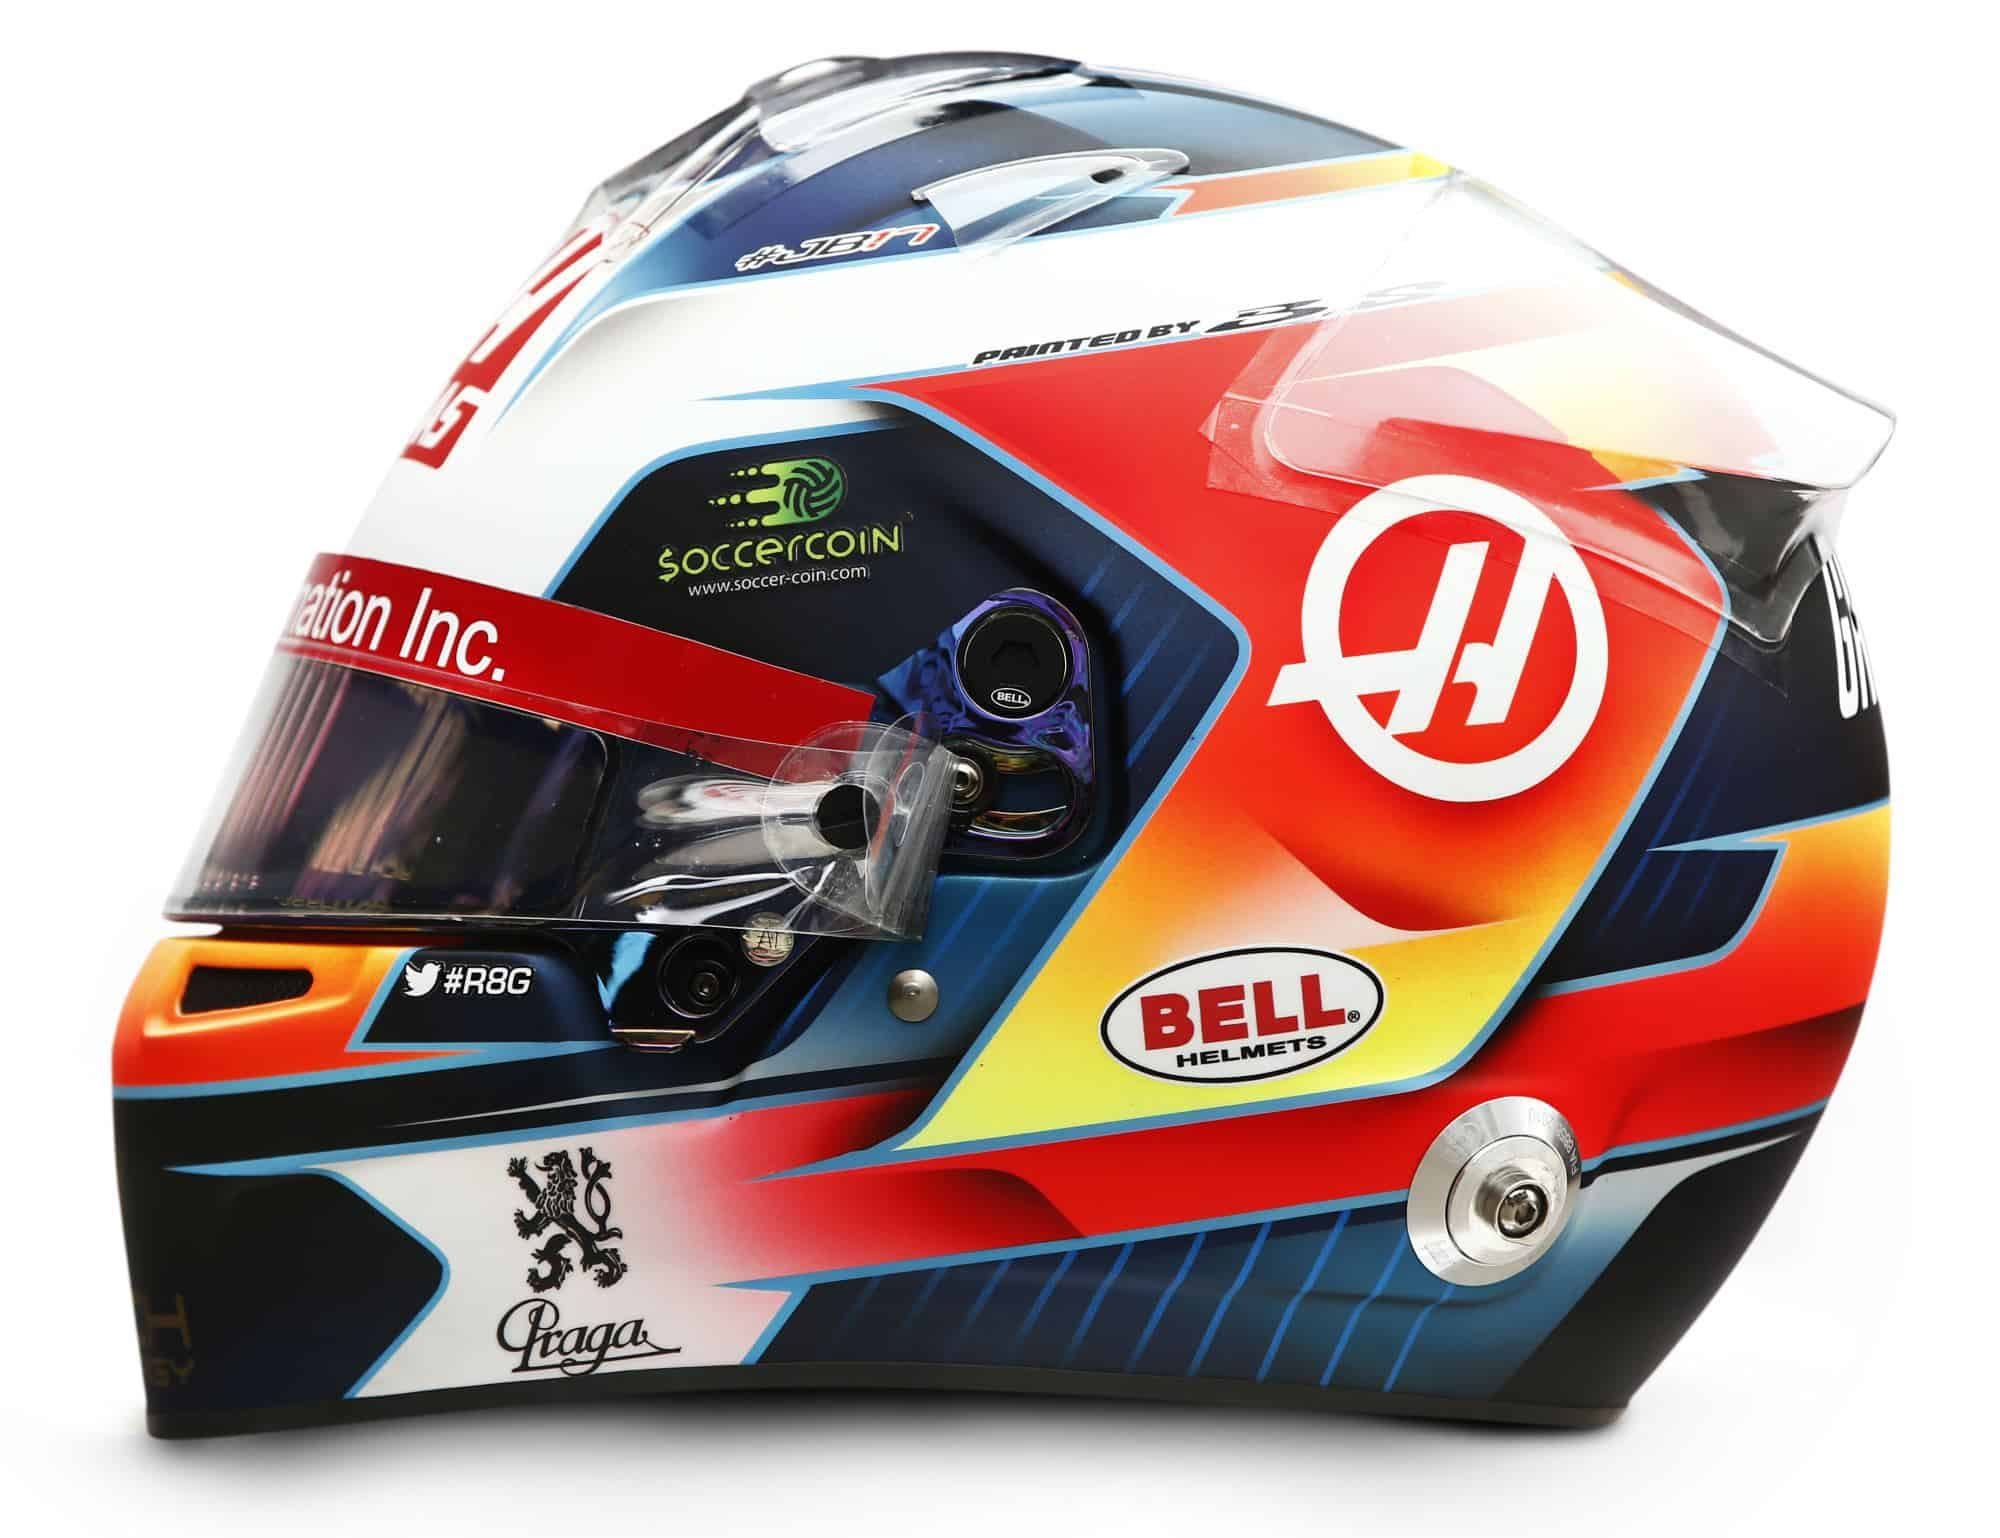 2019 Rich Energy Haas F1 Team Romain Grosjean helmet left side Photo Haas Edited by MAXF1net